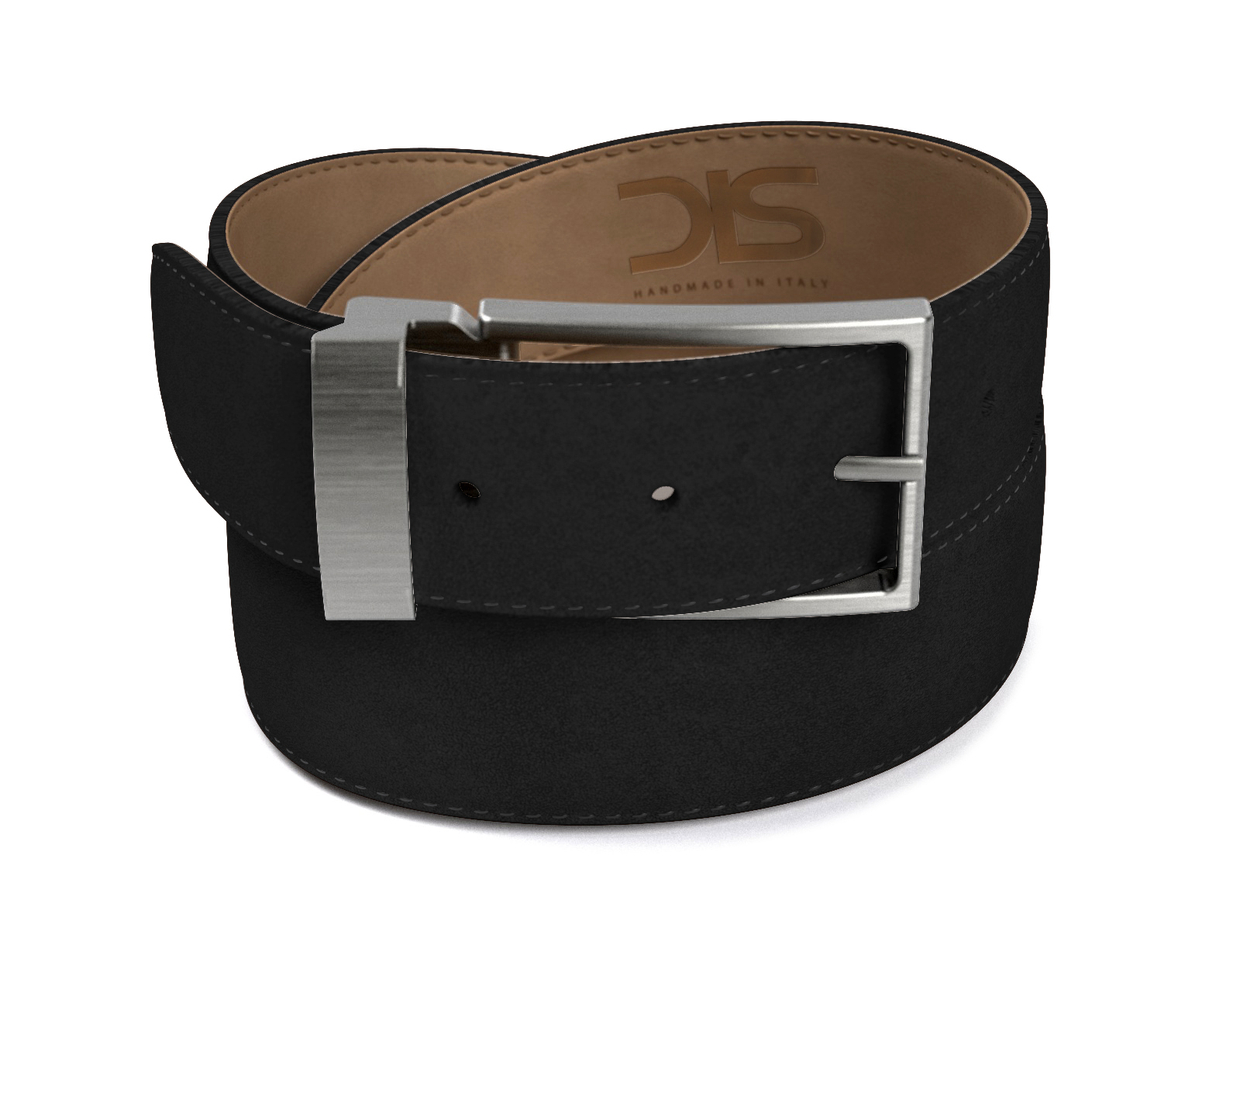 Black suede leather belt with opaque buckle